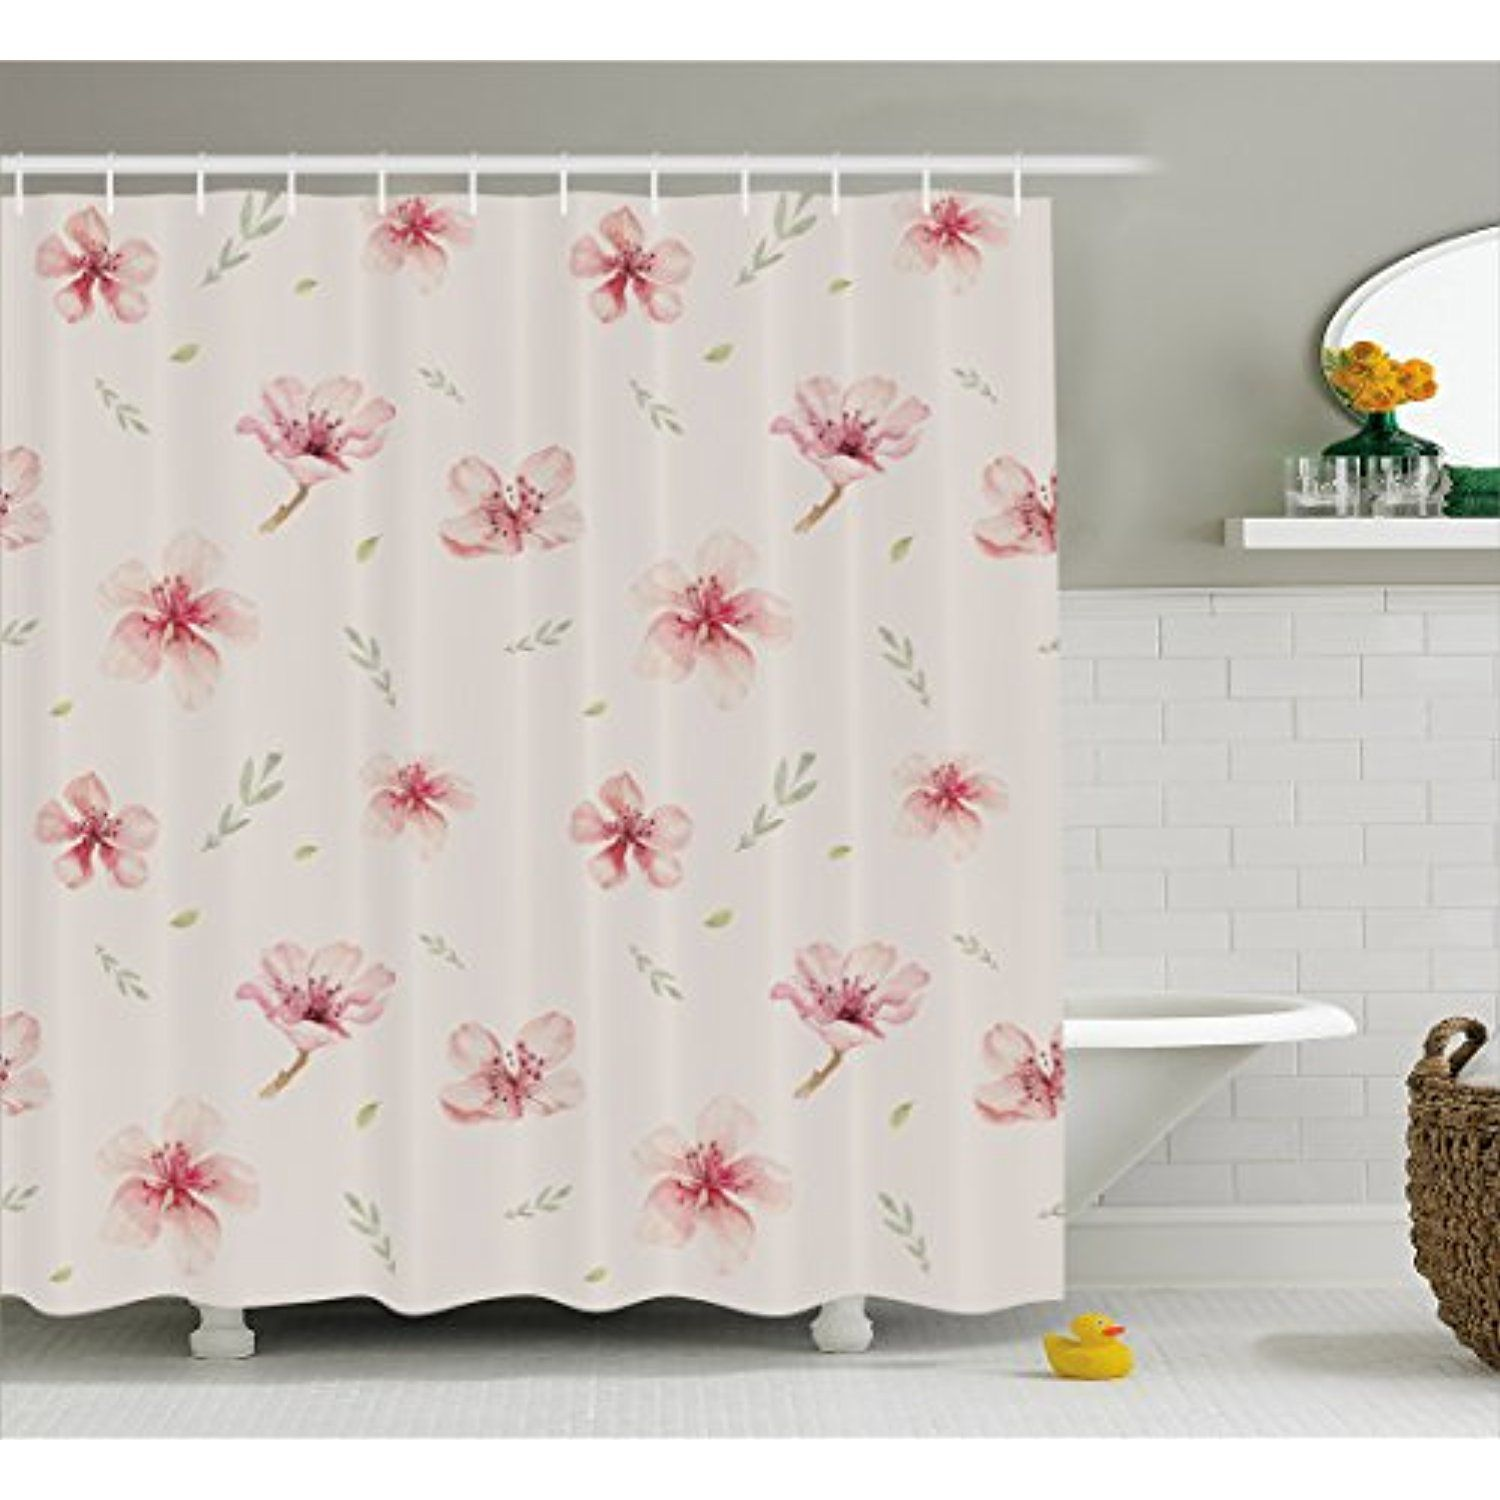 Dusty Rose Shower Curtain By Lunarable Vintage Pattern Of Cherry Blossoms Ornate Spring Garden Inspired